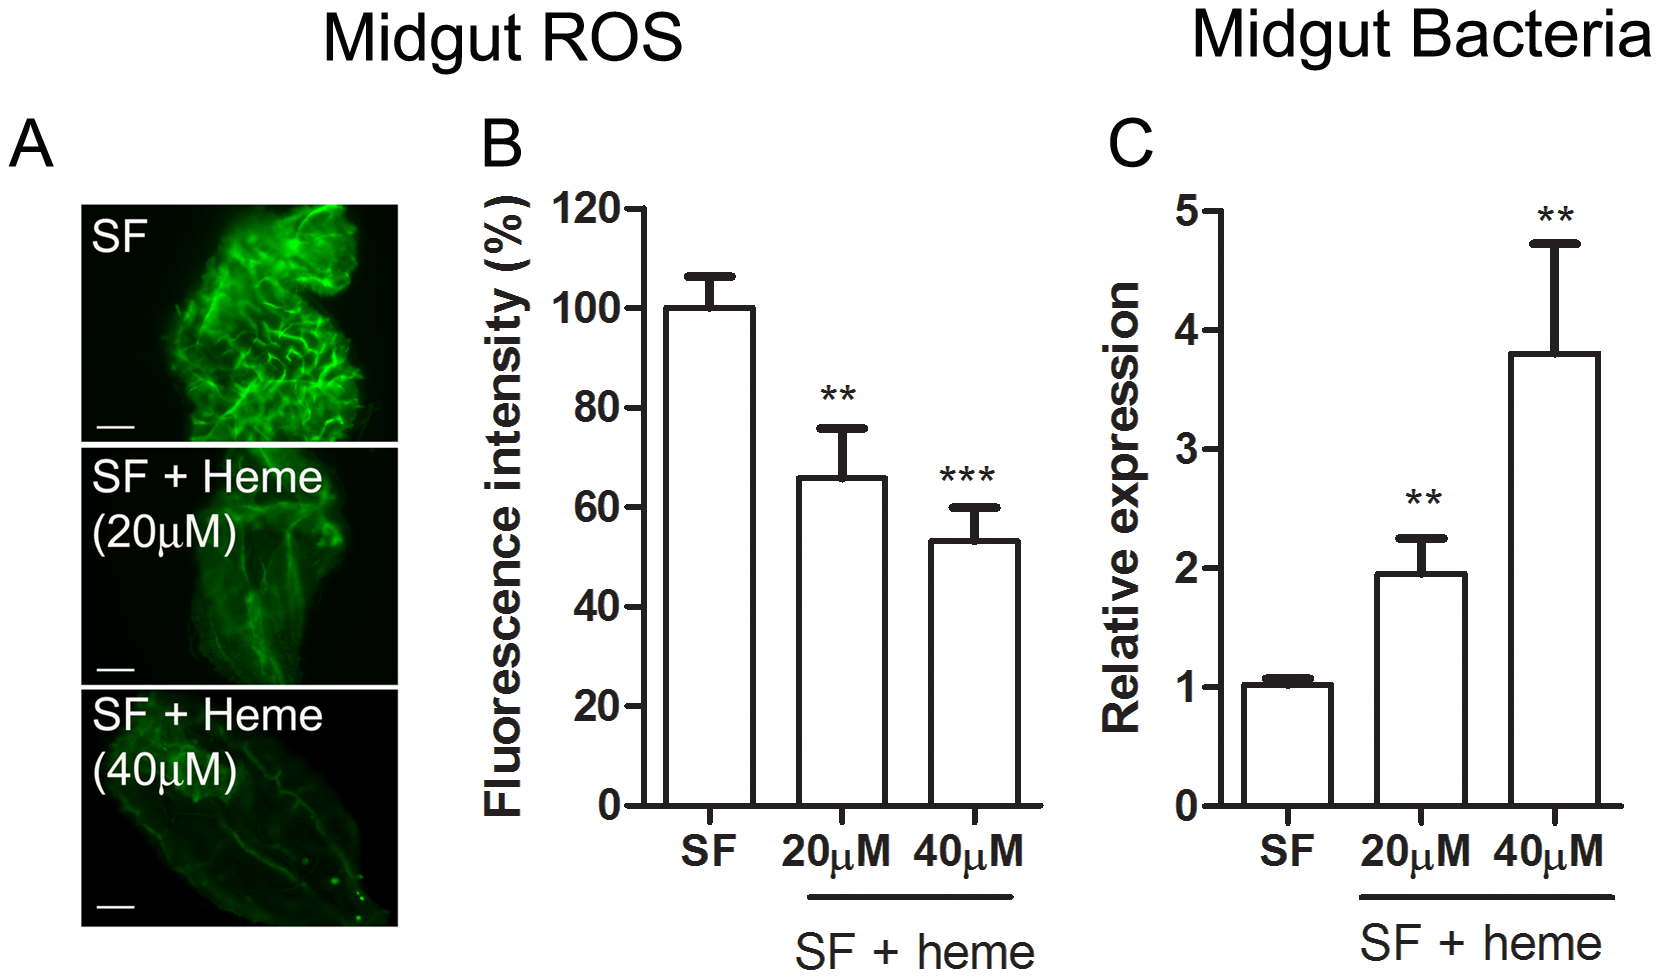 Heme decreases ROS levels in the midgut and allow proliferation of intestinal microbiota.